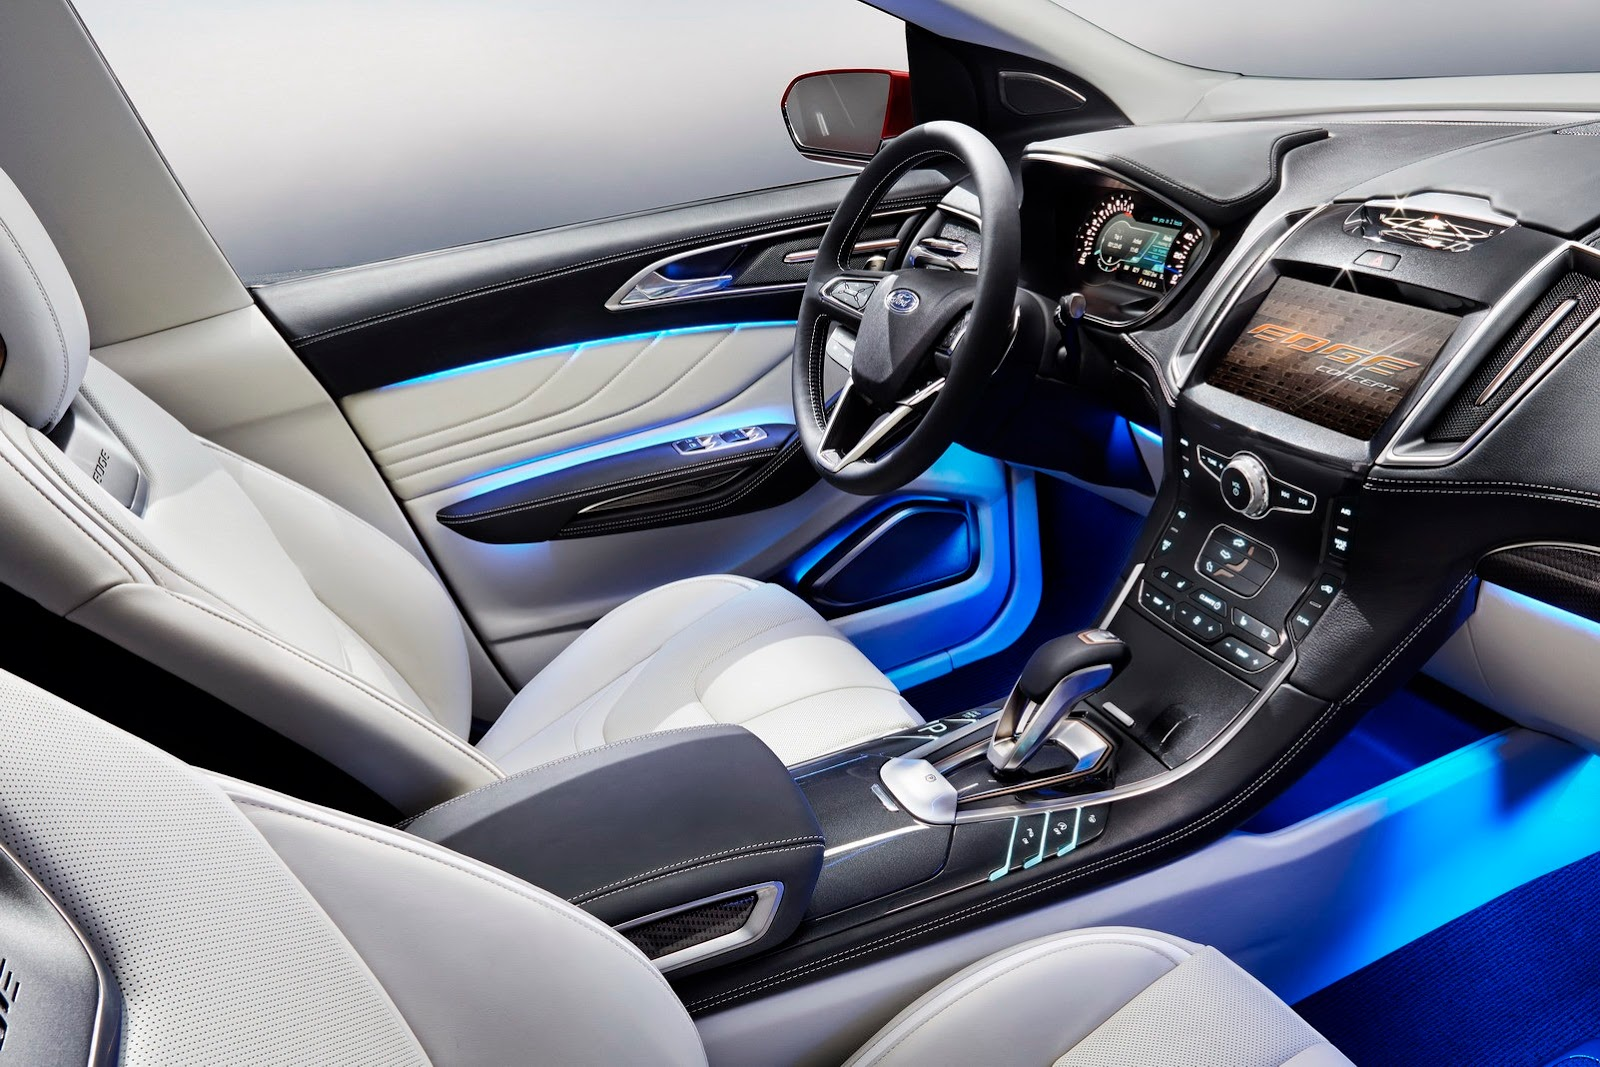 2015 ford edge concept unveiled autoevolution. Black Bedroom Furniture Sets. Home Design Ideas